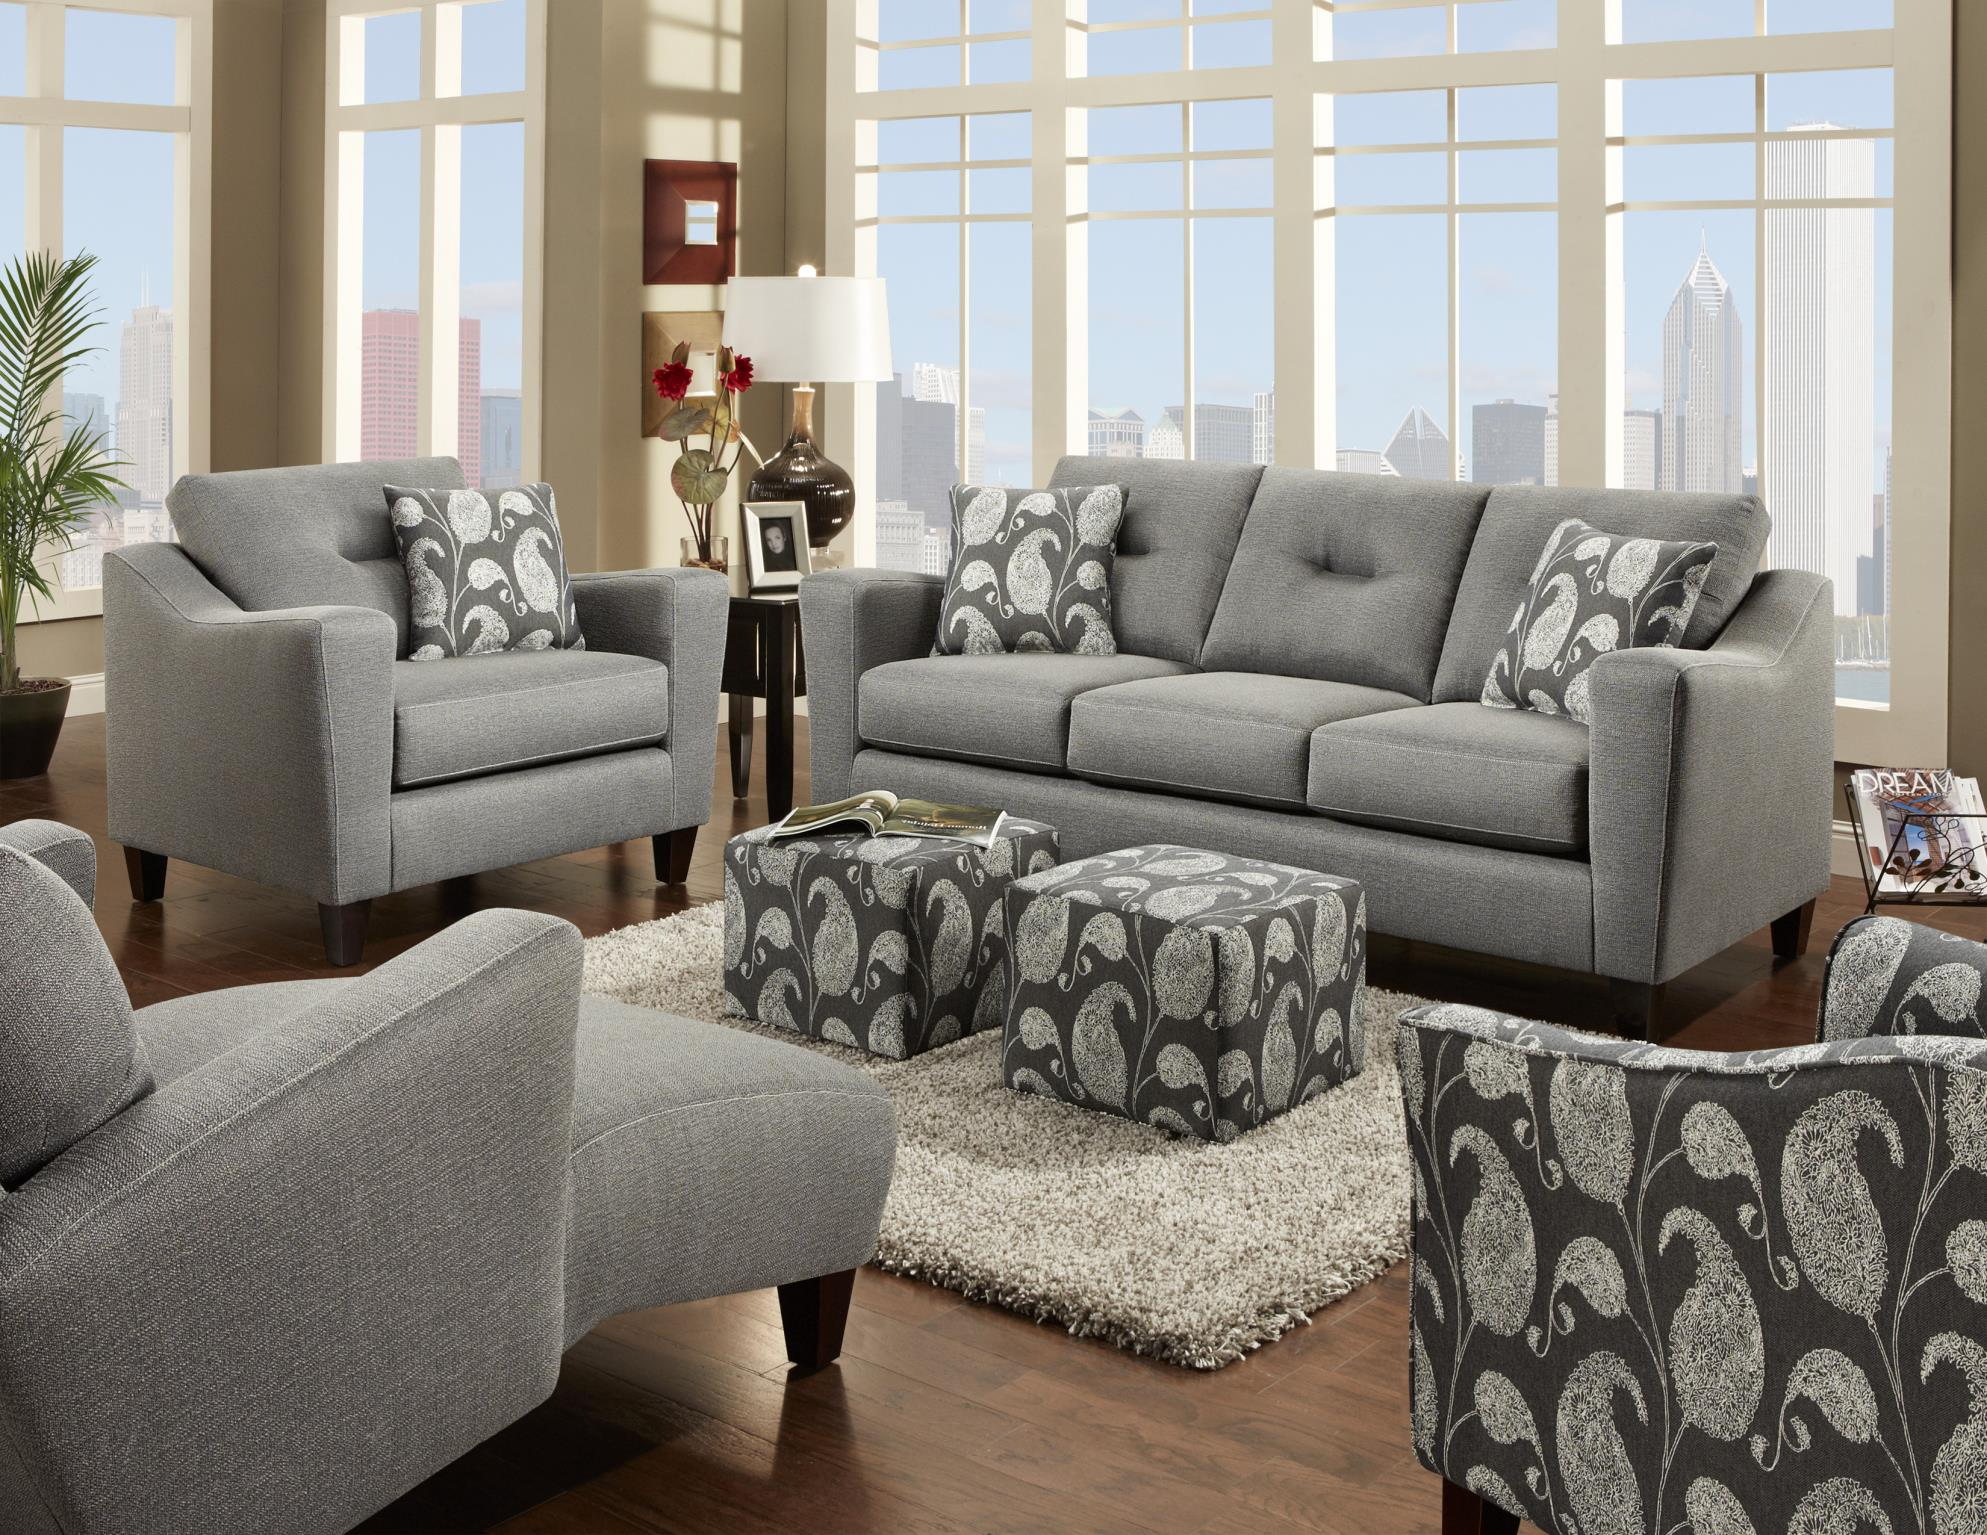 Upholstered Furniture - Kutter's | America's Furniture Store®